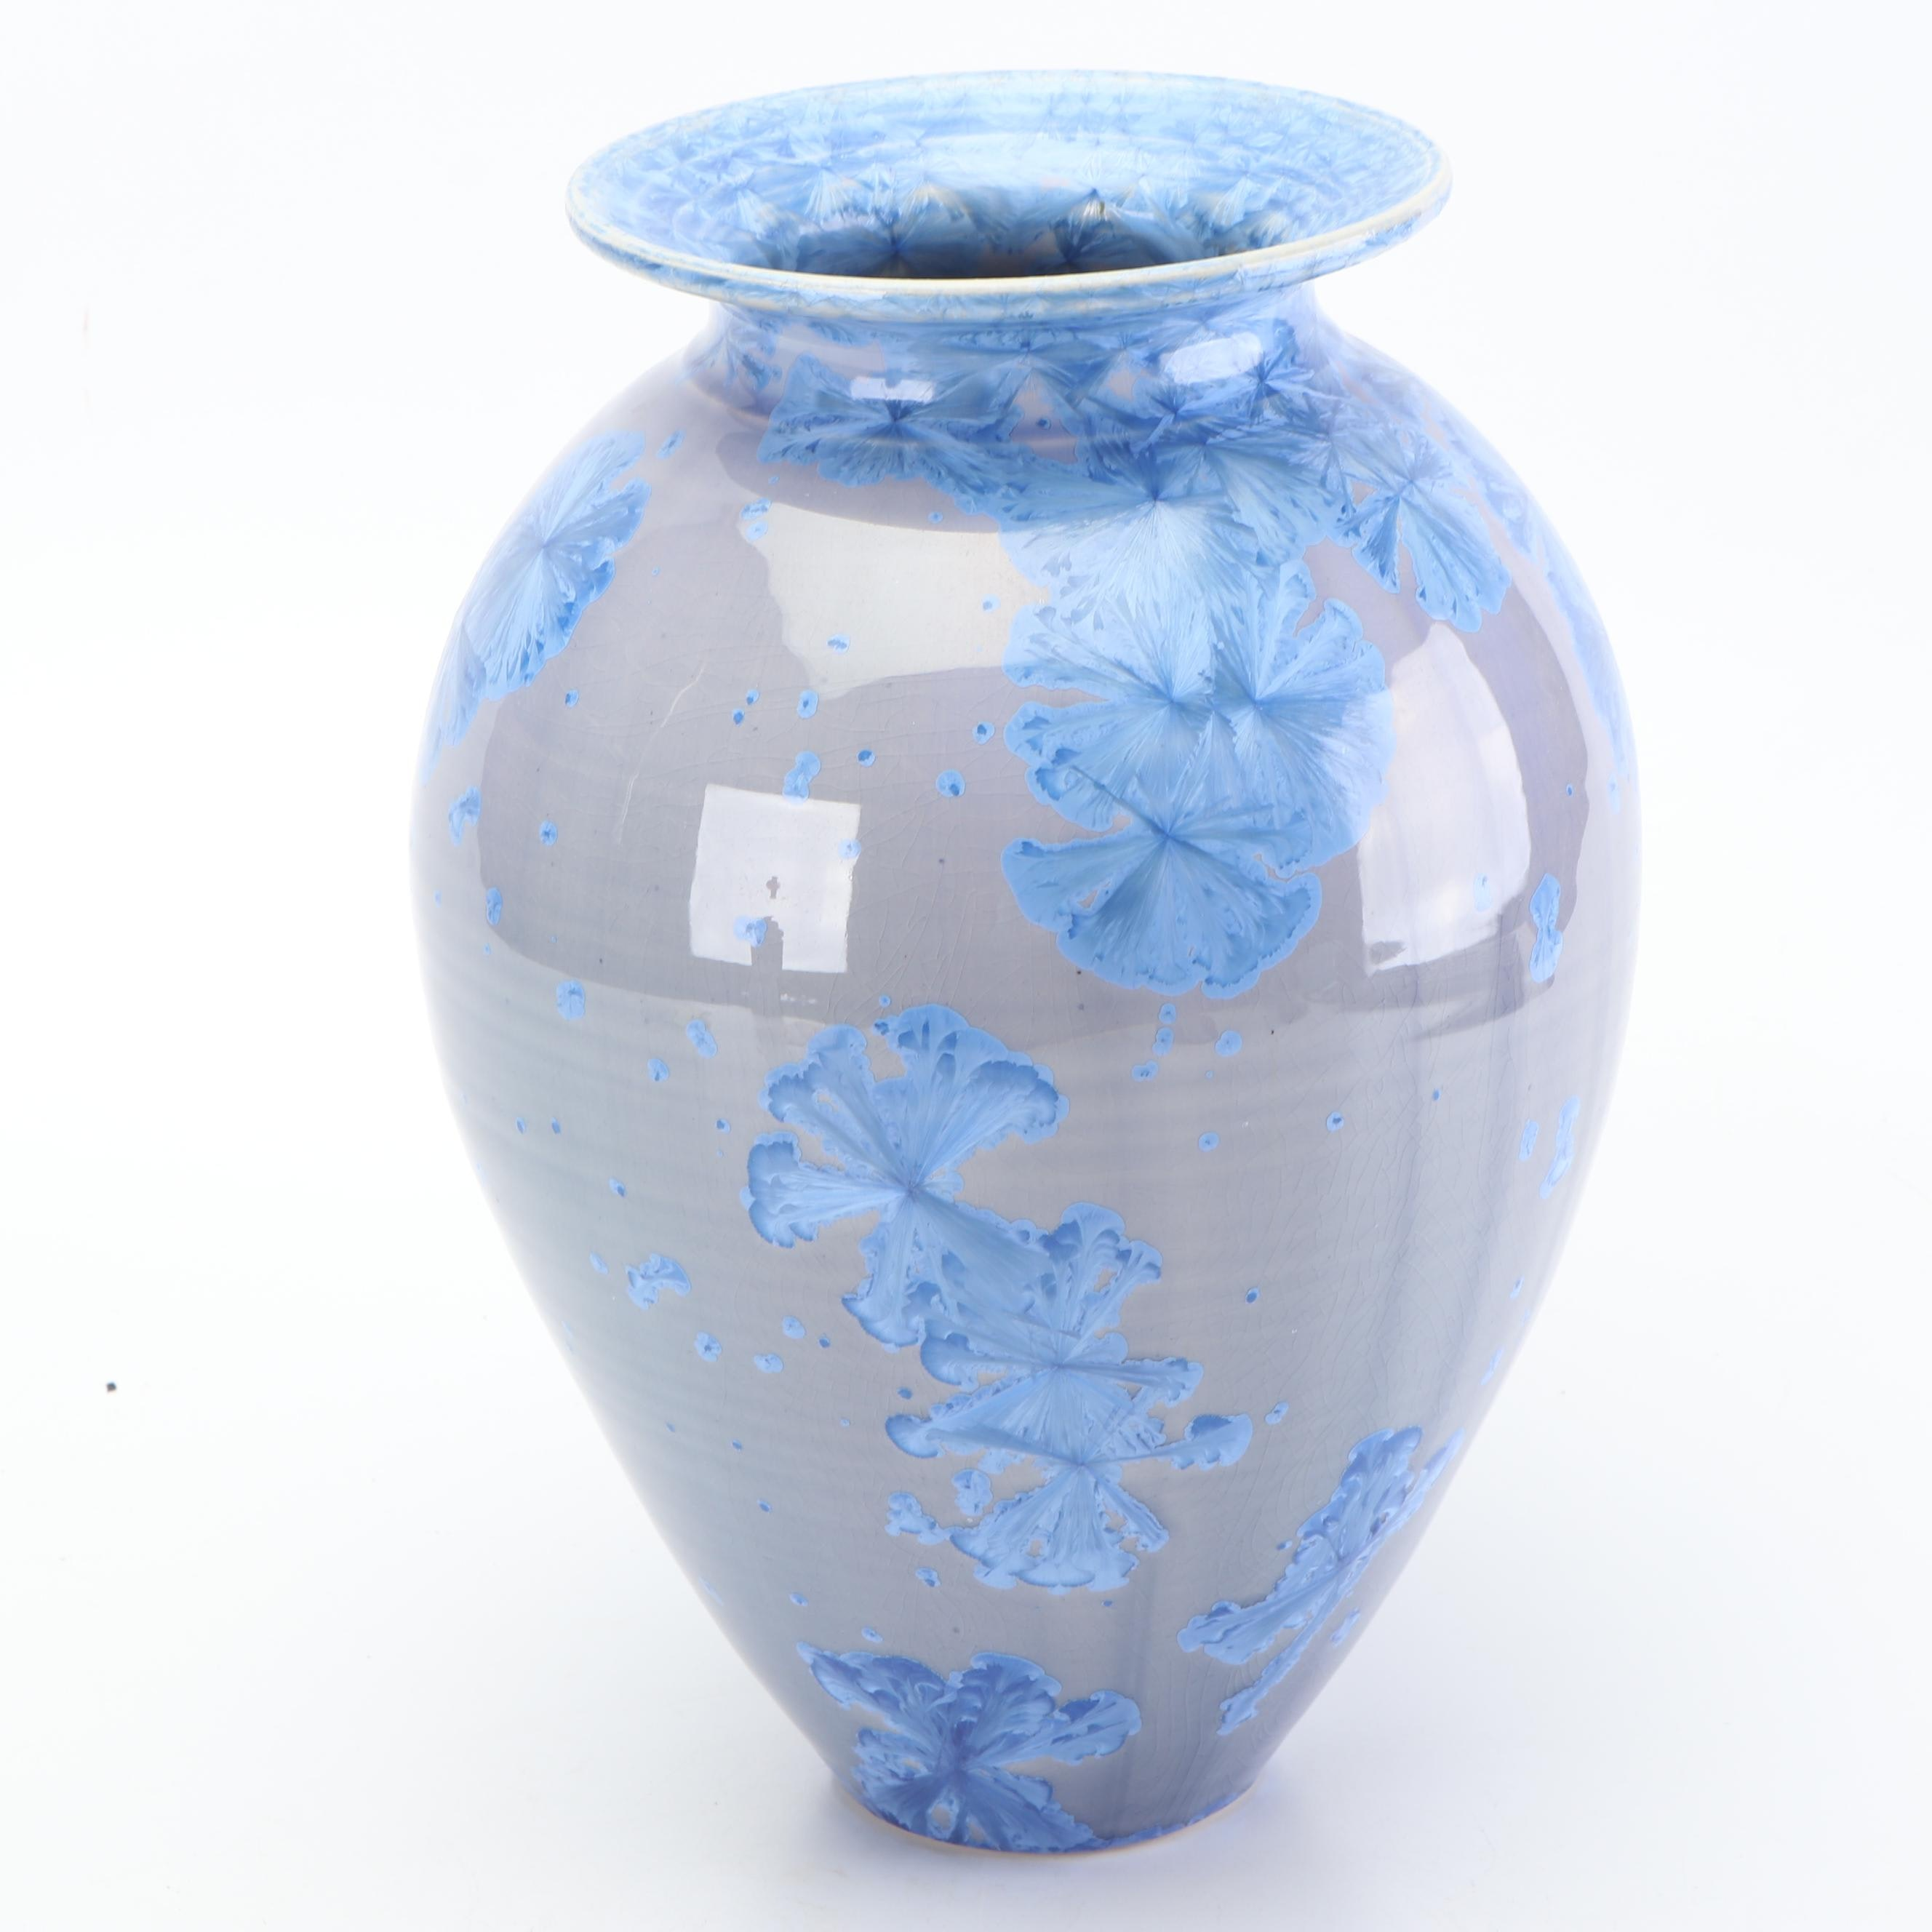 Crystalline Glazed Porcelain Vase Attributed to Dover Pottery, 1990s